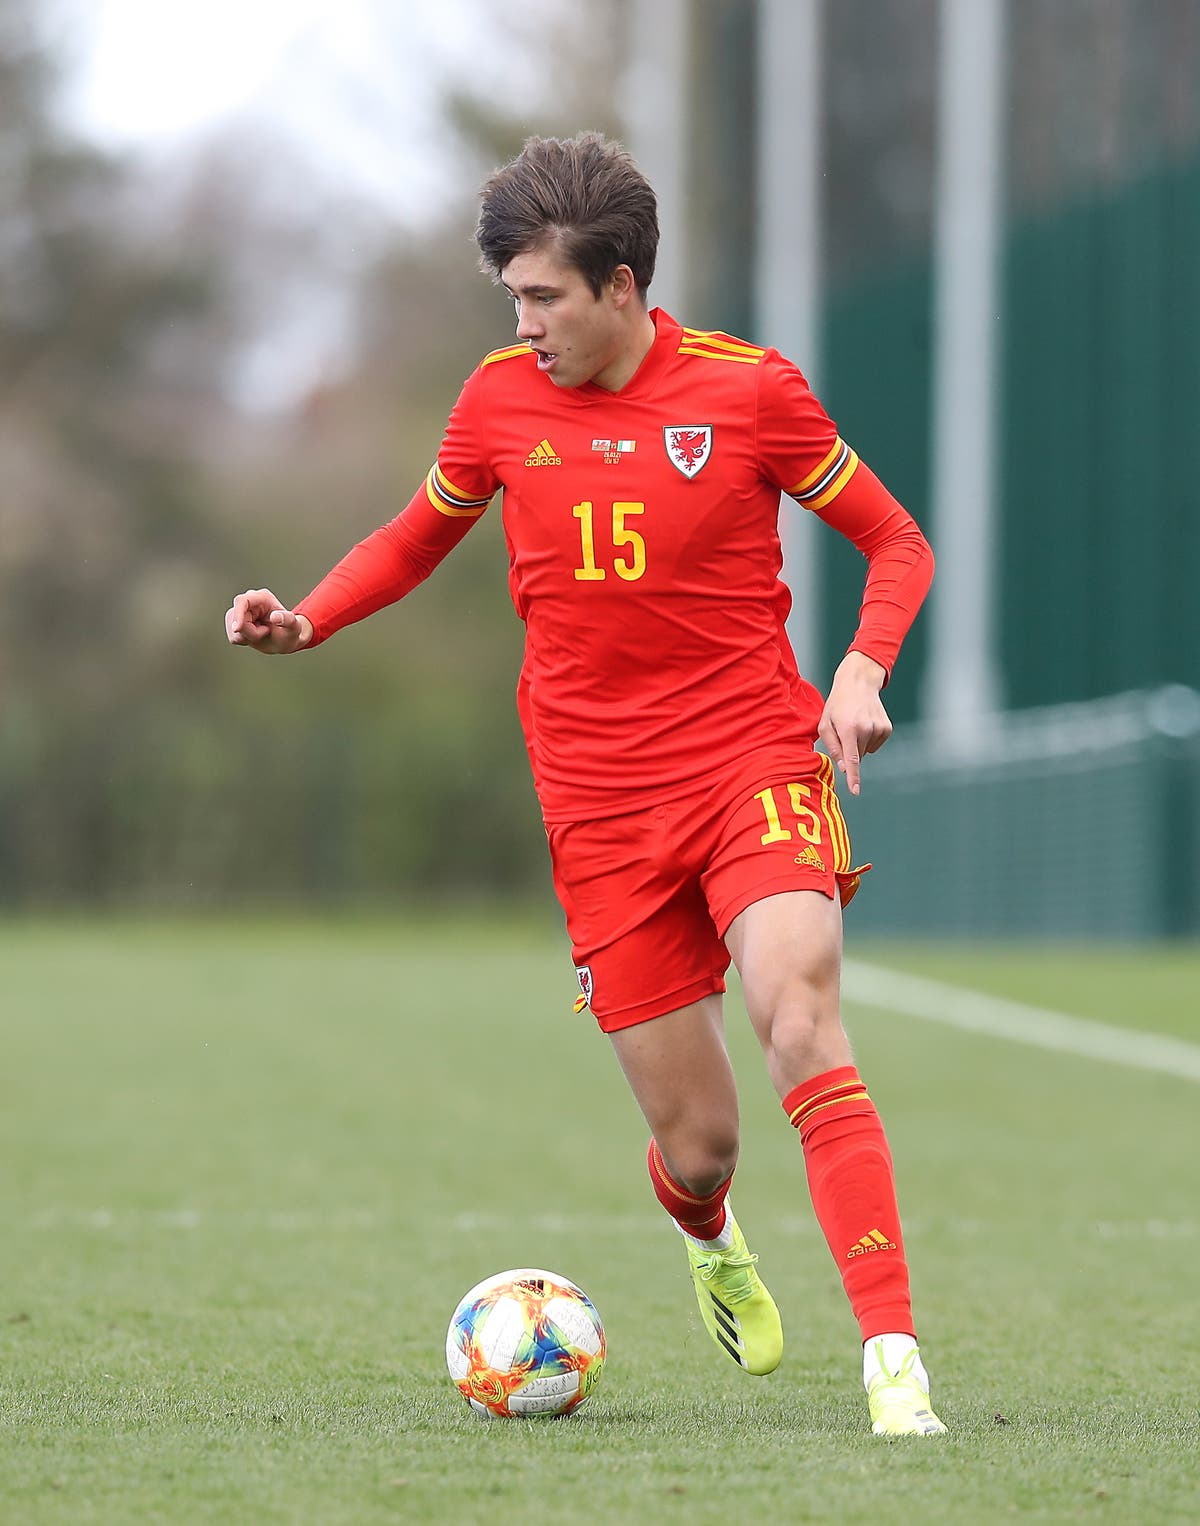 Uncapped teenager Rubin Colwill makes Wales' final squad for Euro 2020